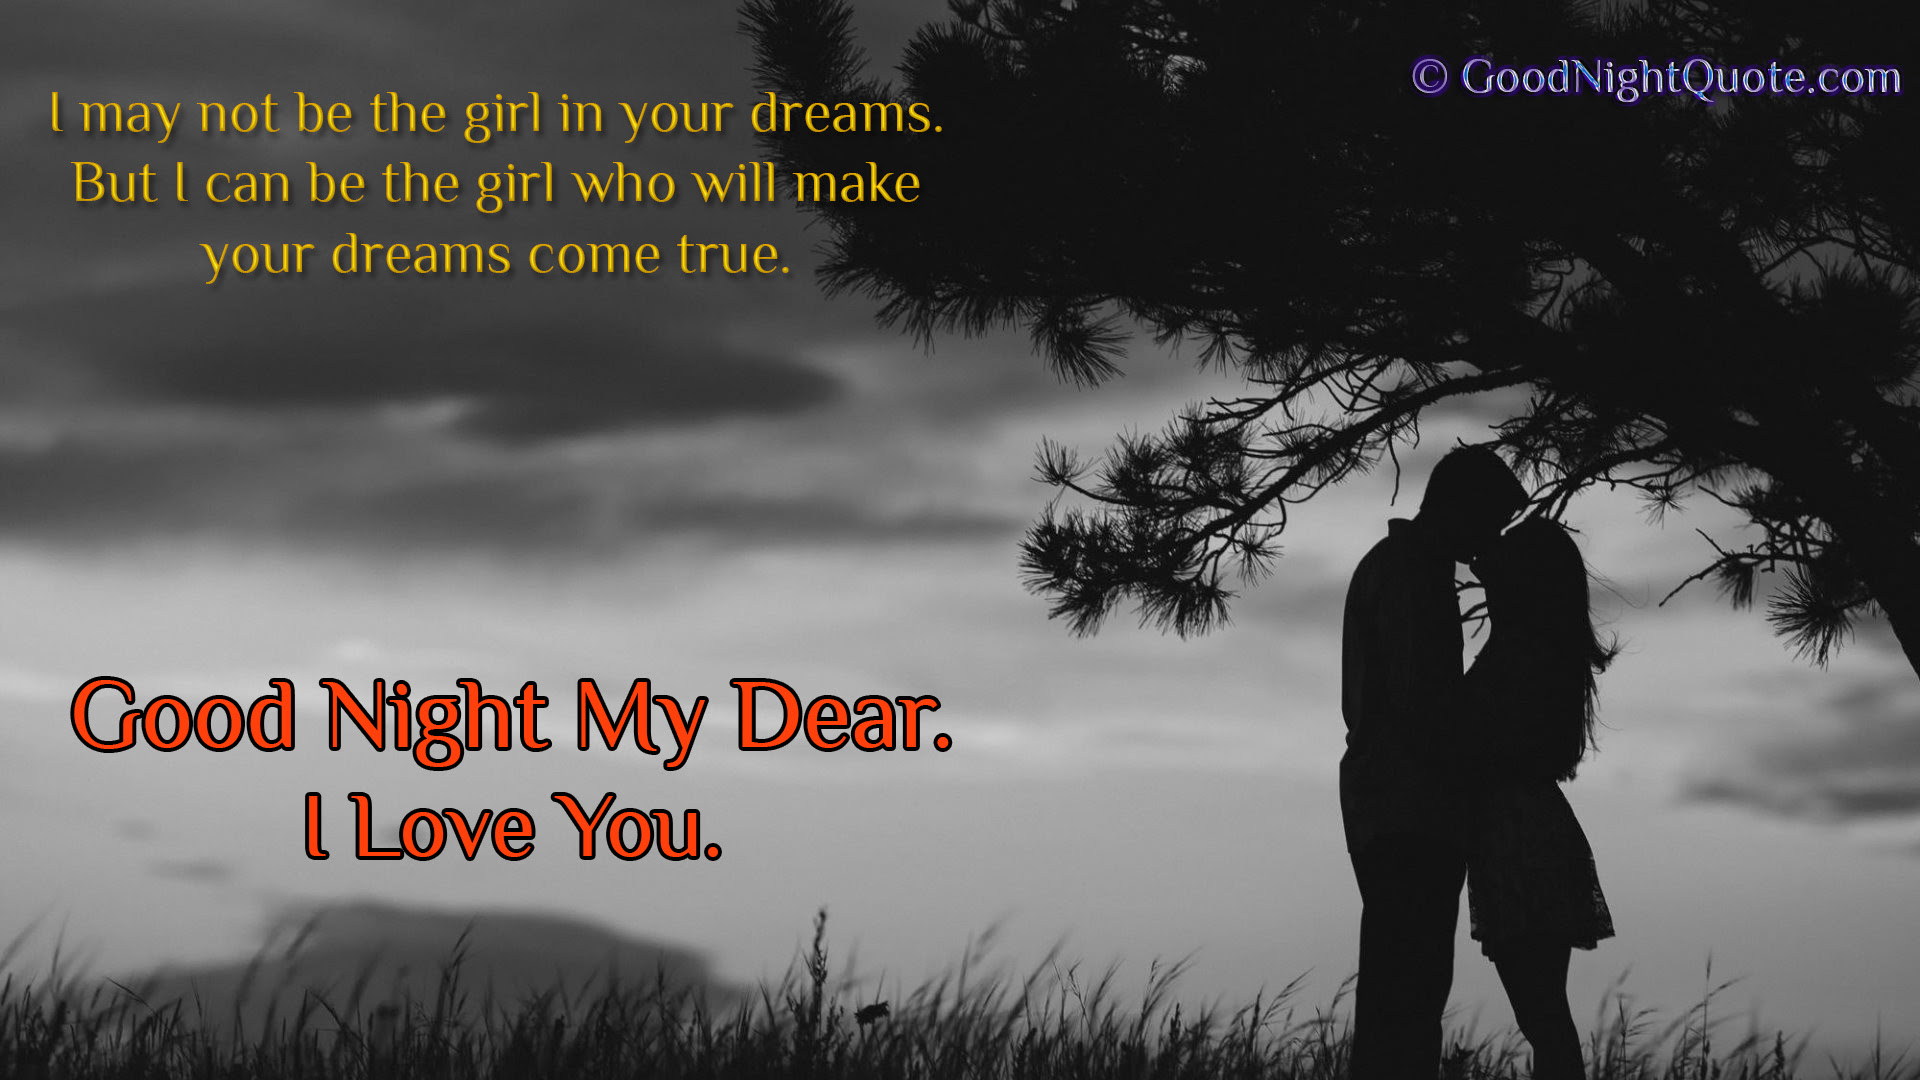 Cute And Romantic I Love You Good Night Images Wallpapers For